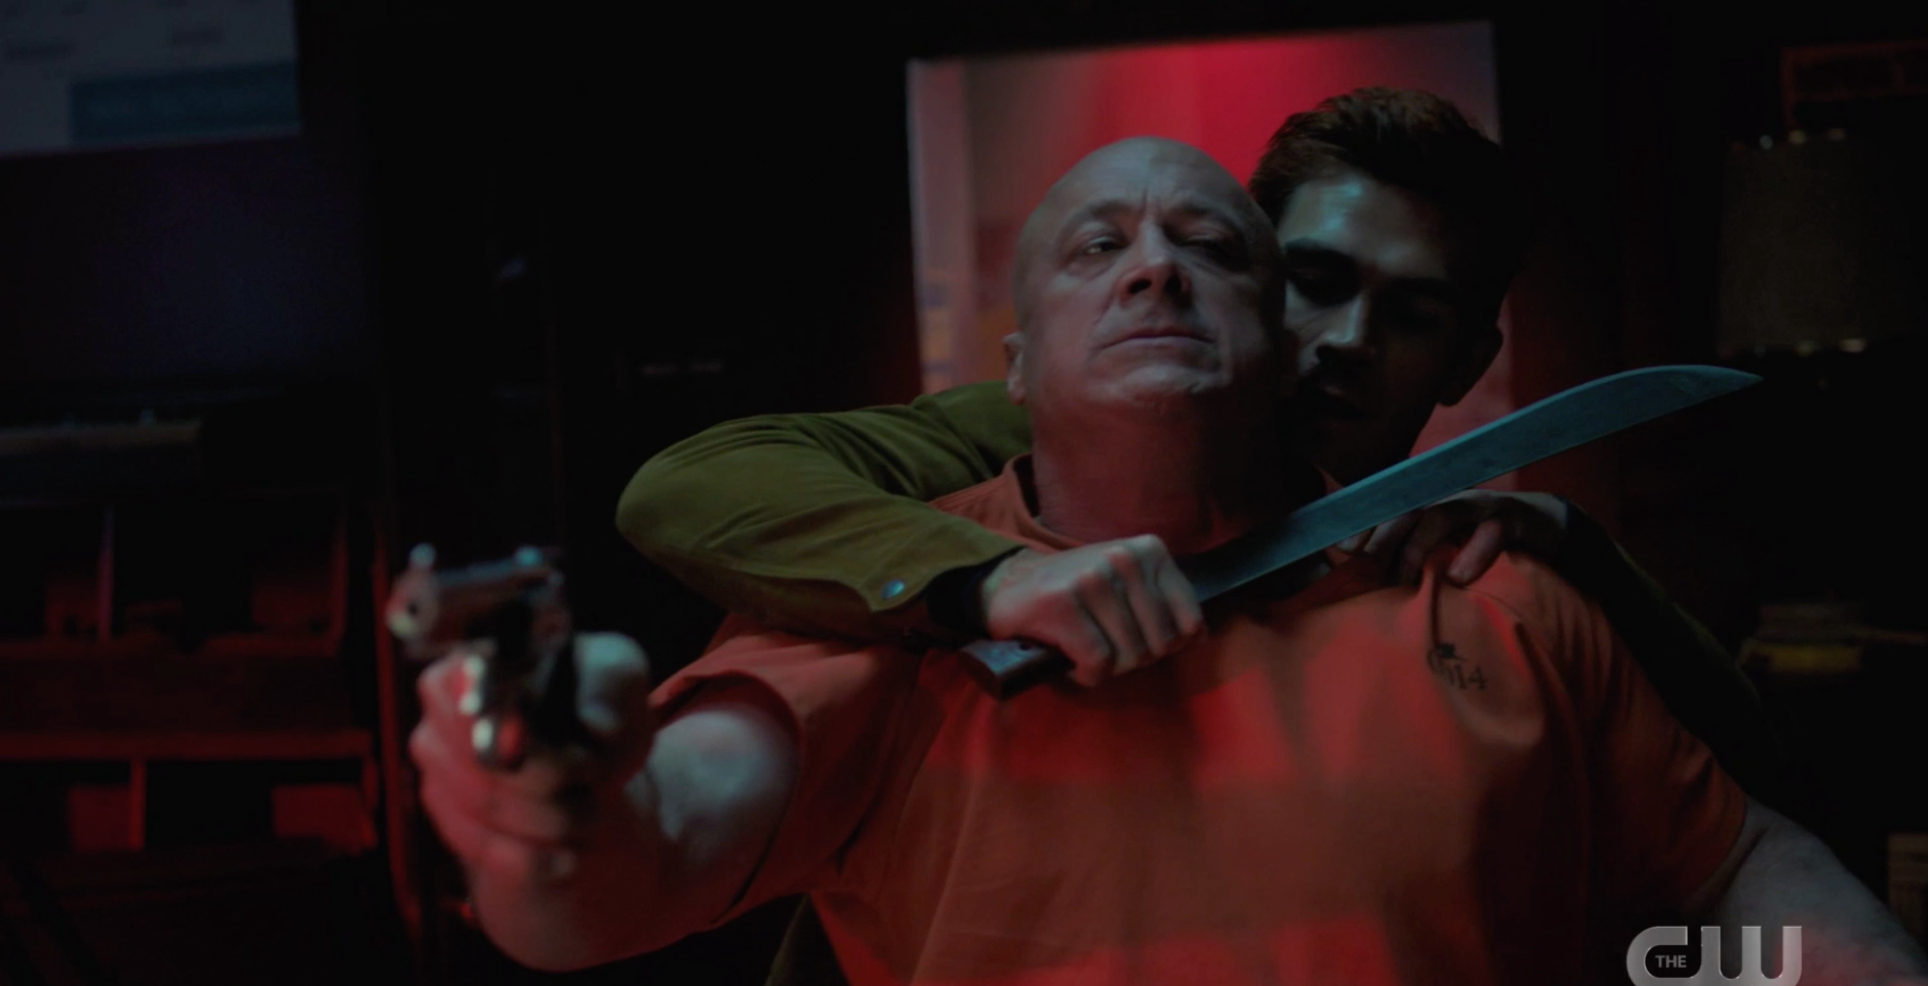 Archie holding a guy at sword point while he aims a gun